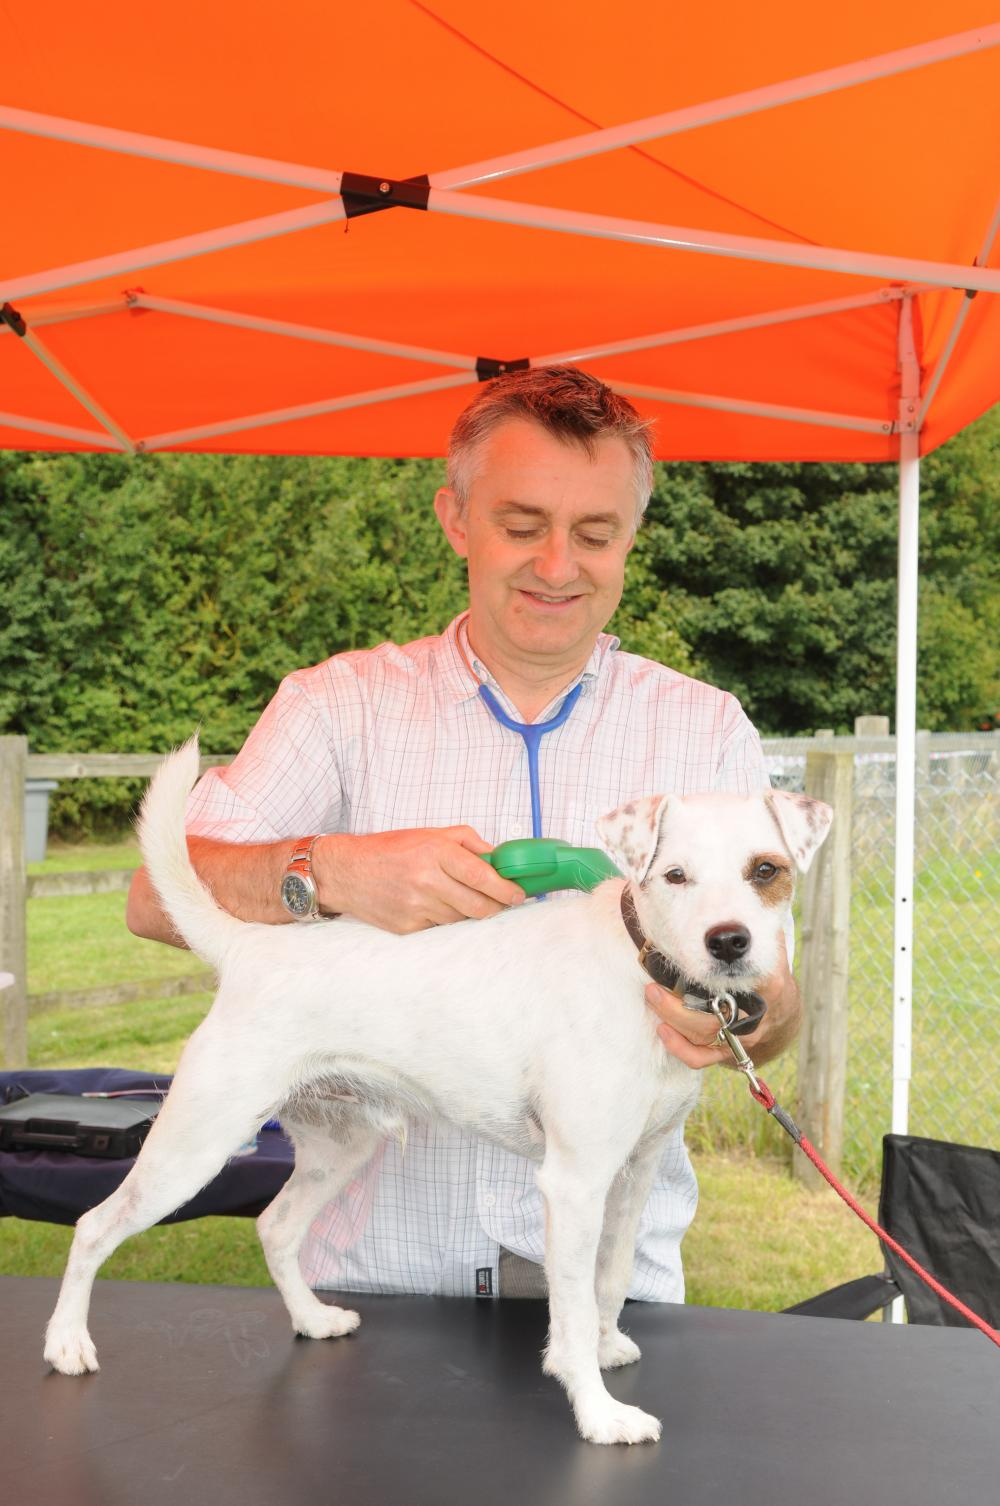 A Parsons Russell Terrier is scanned for a microchip